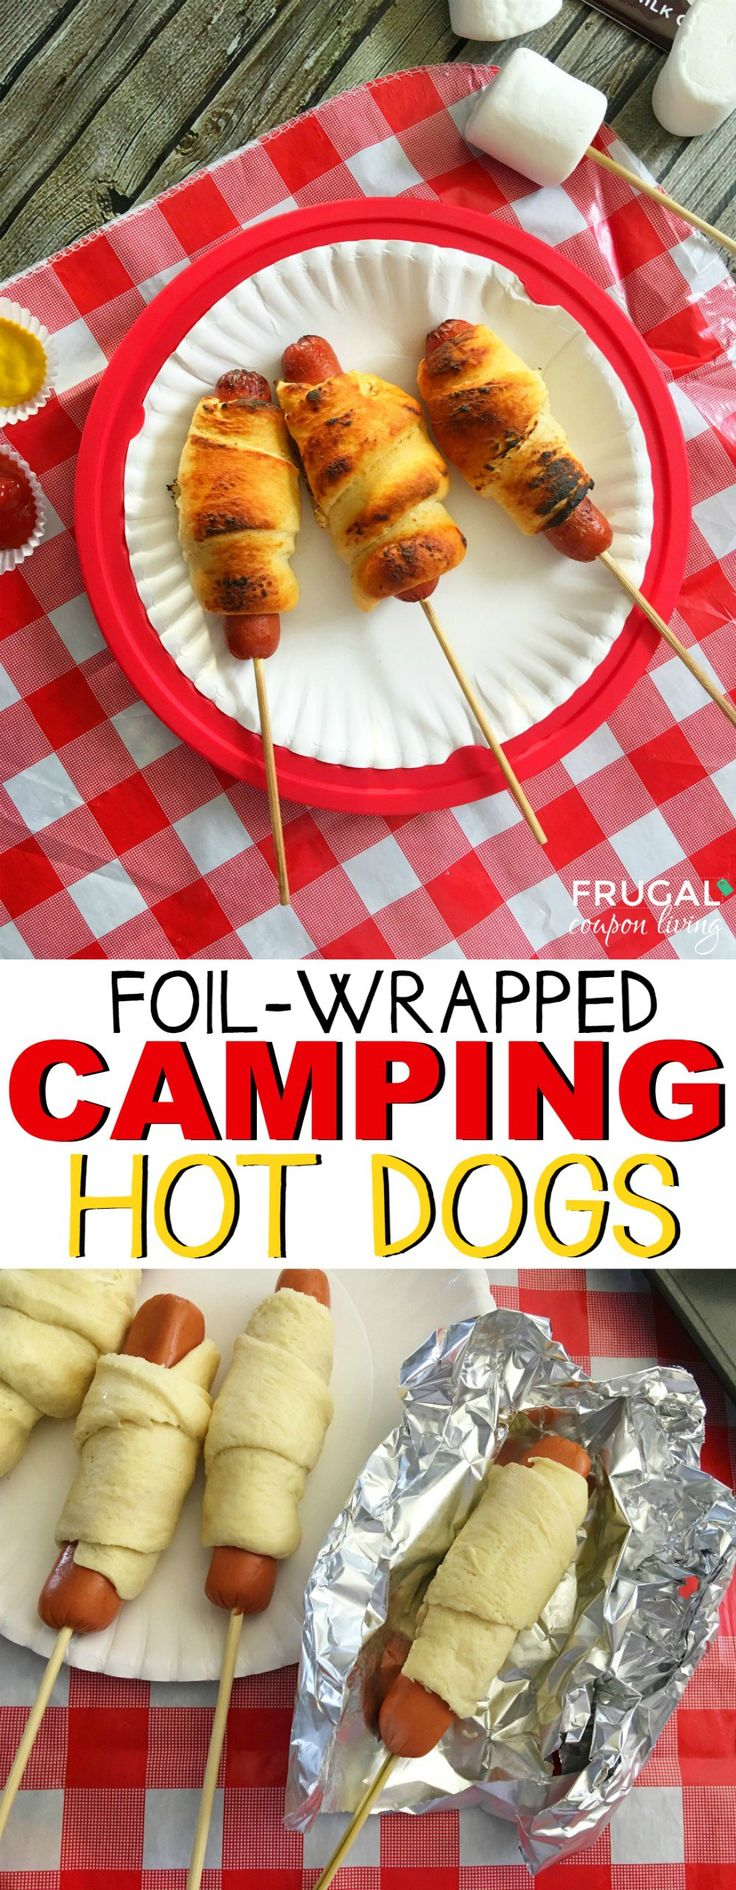 We are bringing you our 5 best camping food ideas that we think will help you…